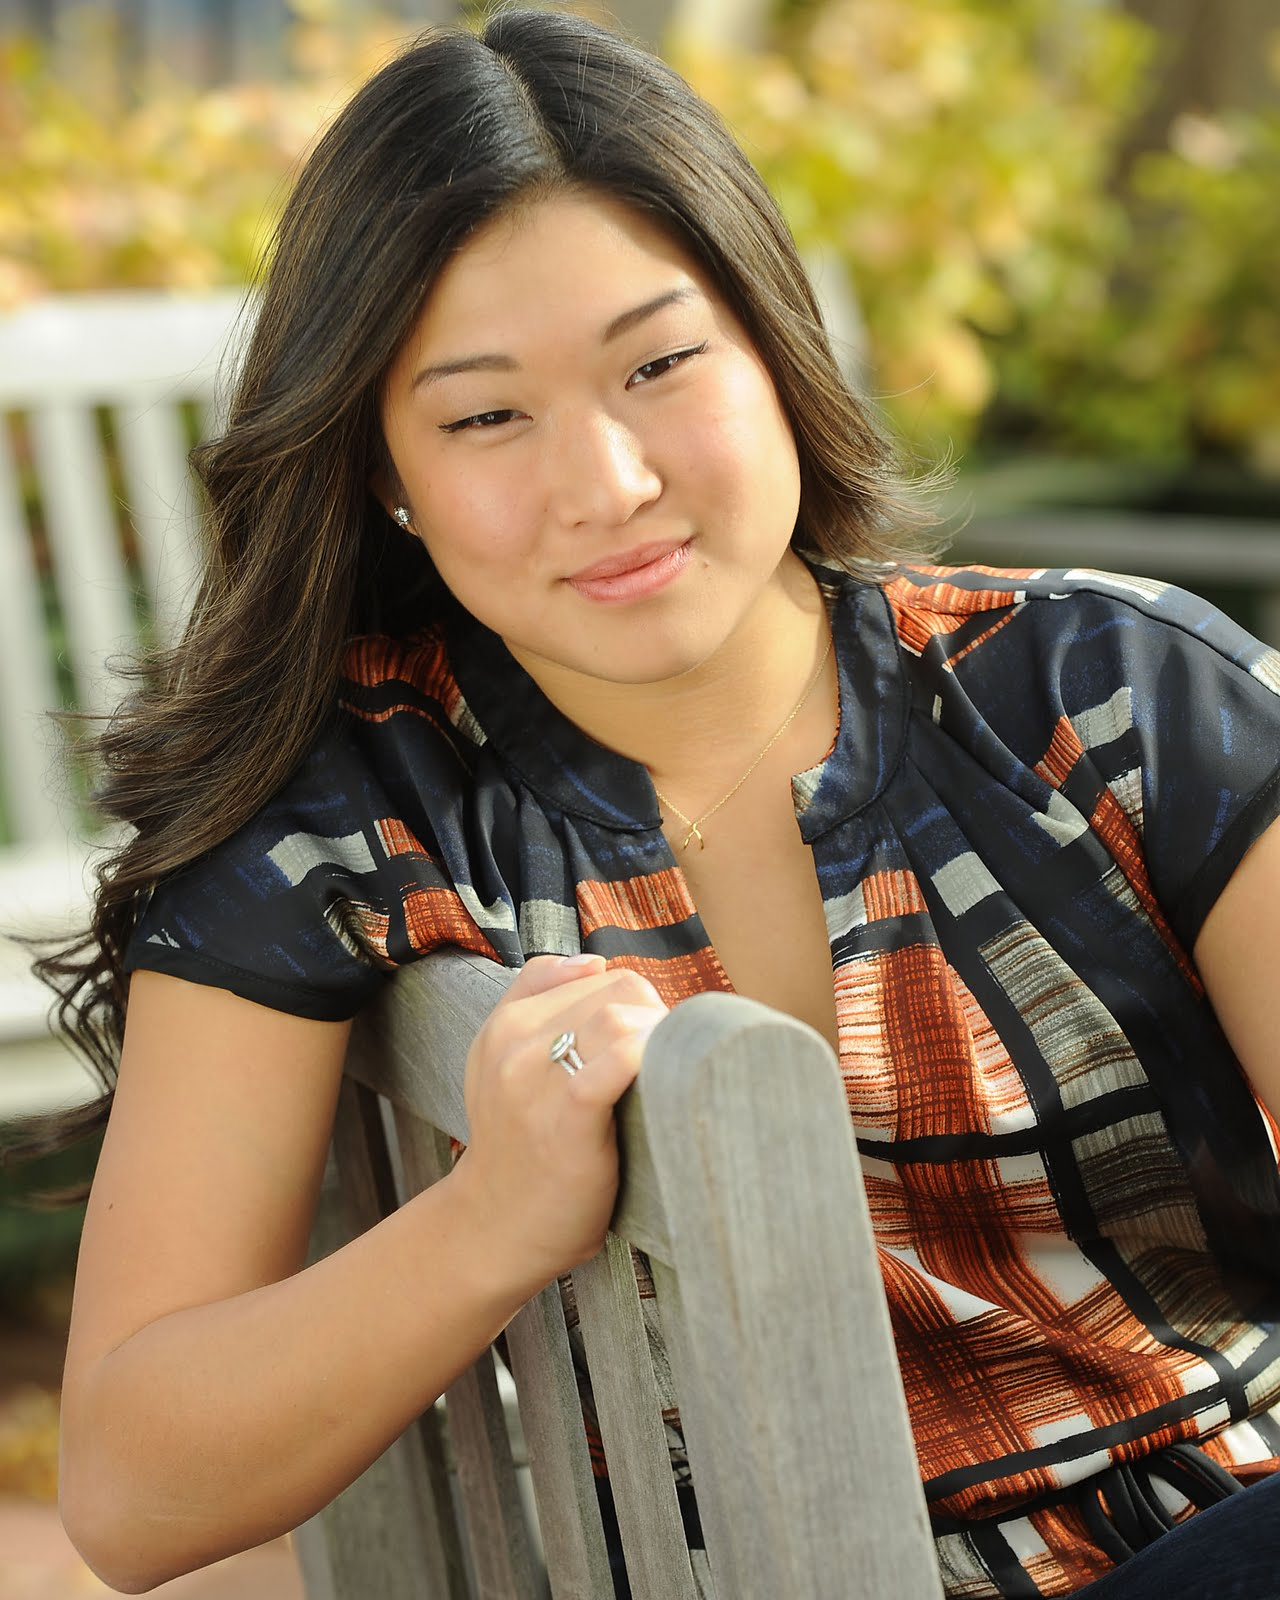 Interview with Glee actress Jenna Ushkowitz on fashion and film